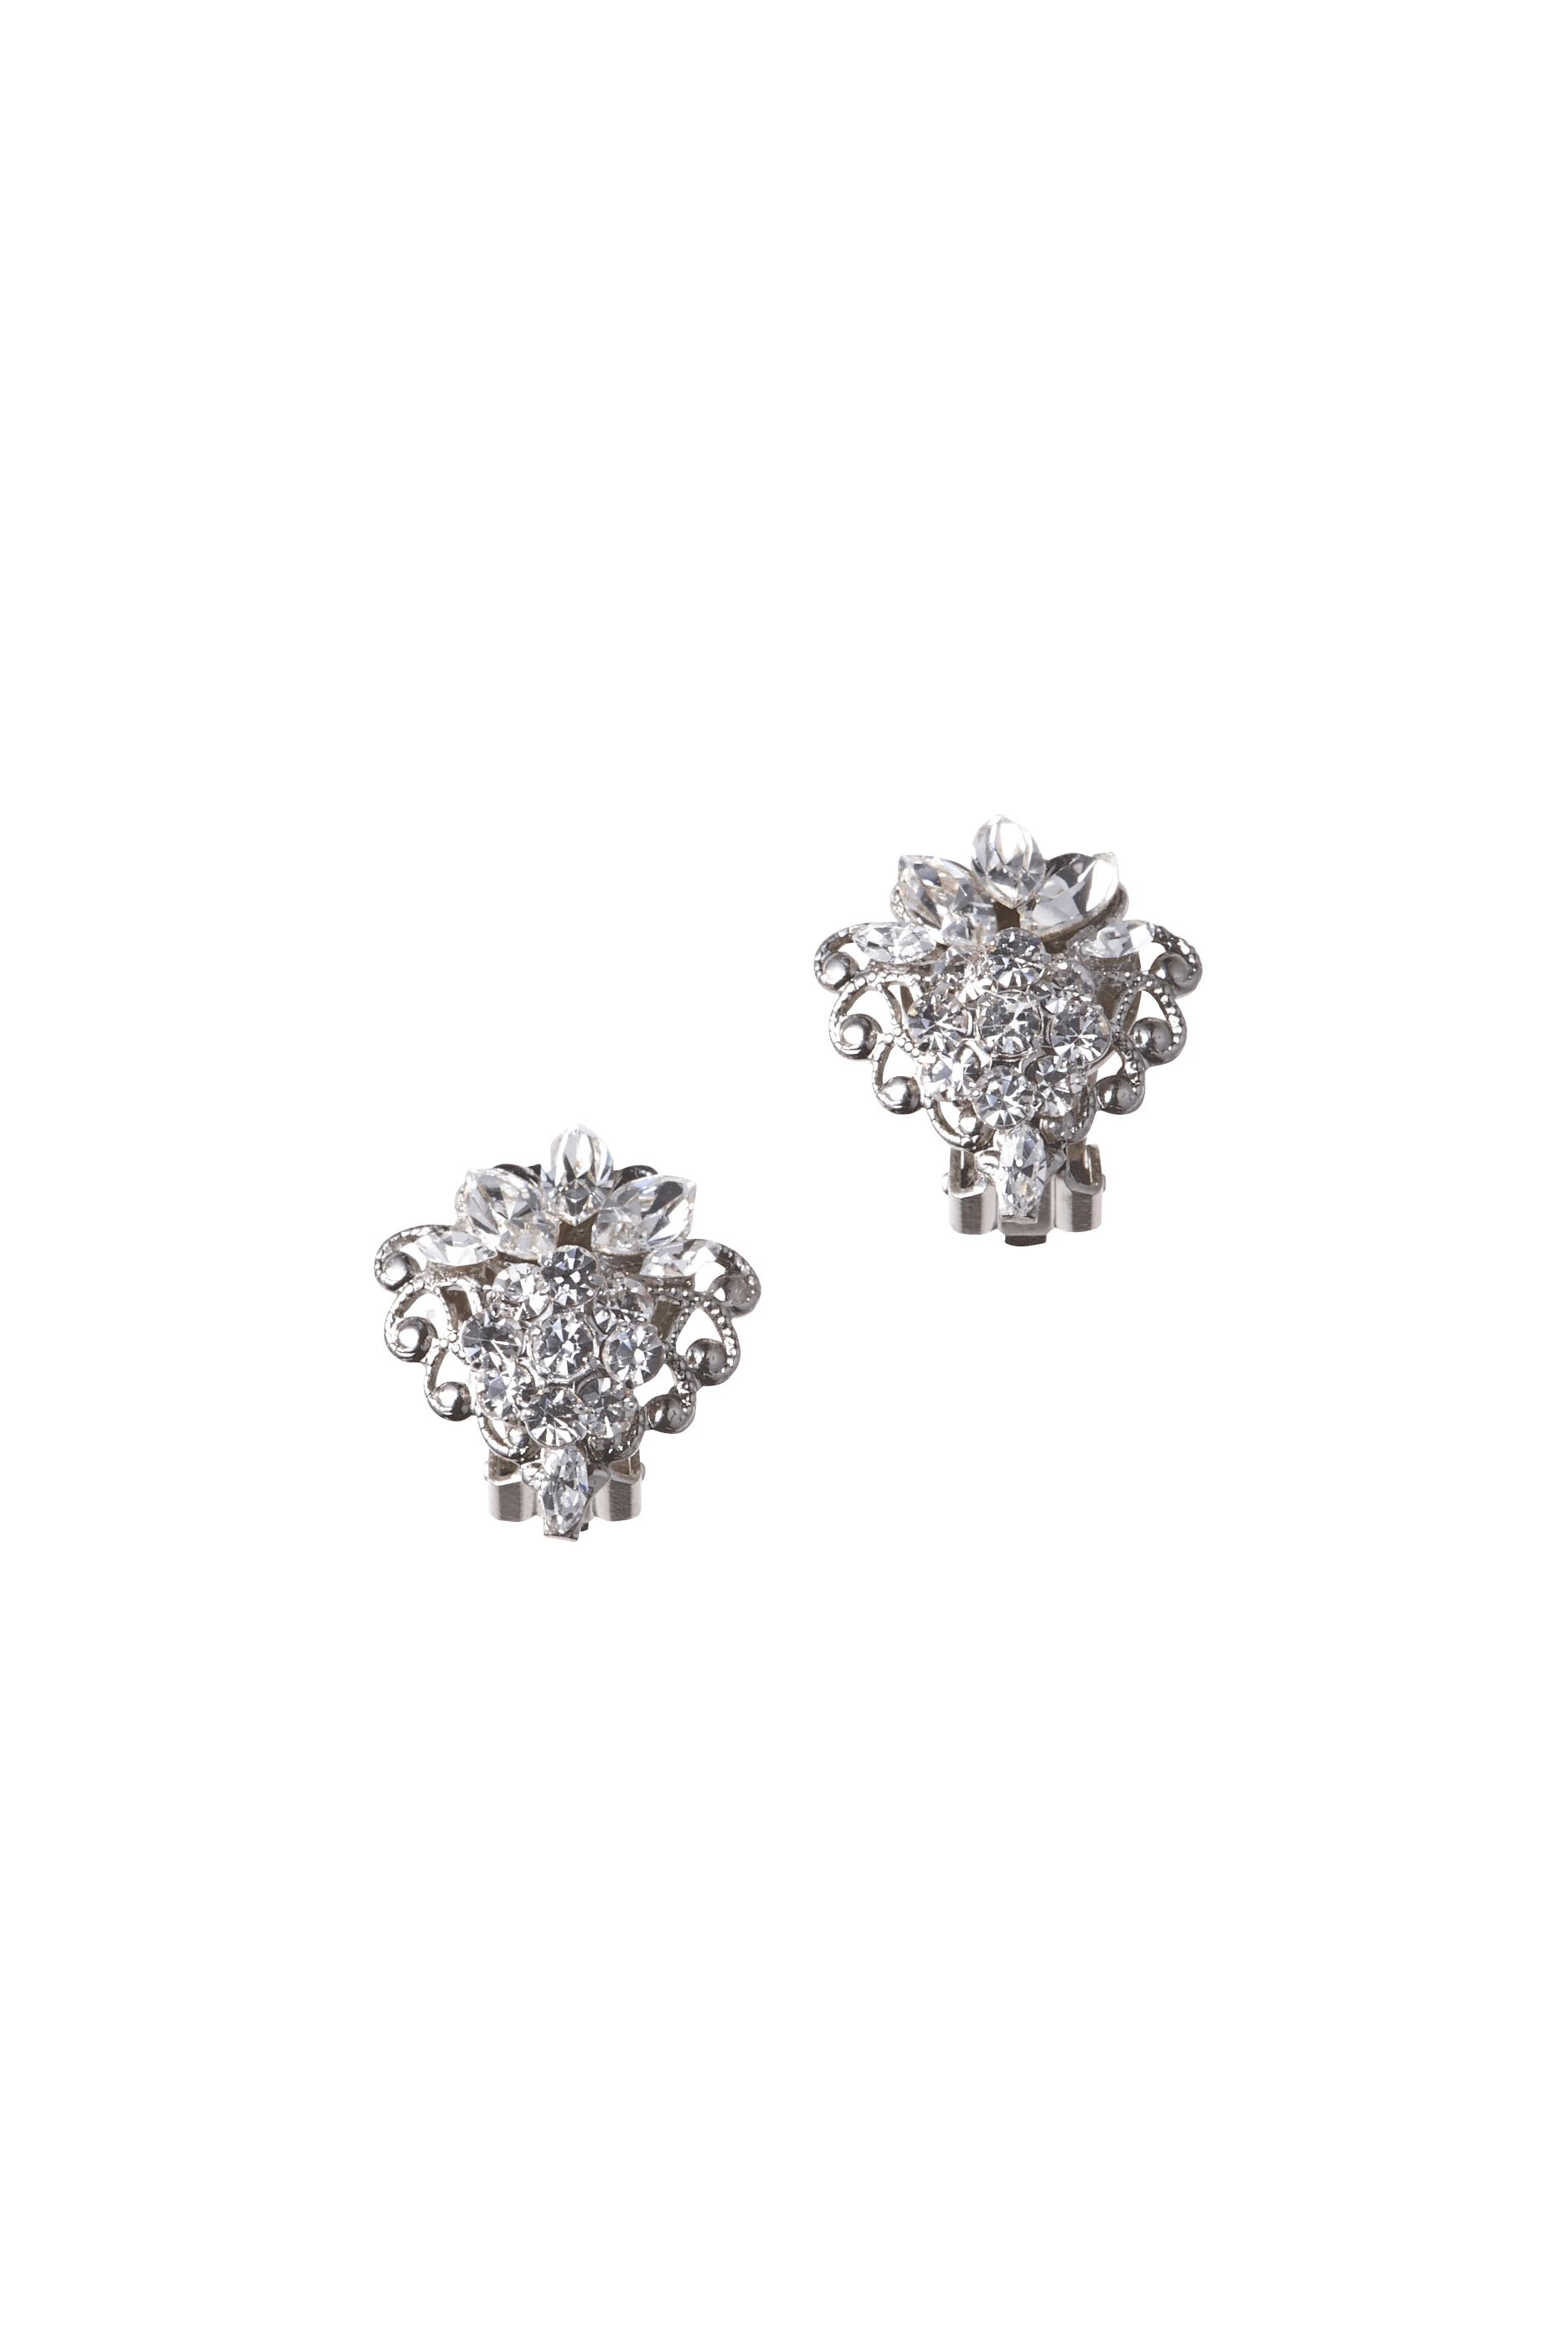 [RENTAL][Tino Earrings]by MariaElena(参考価格¥29,160)